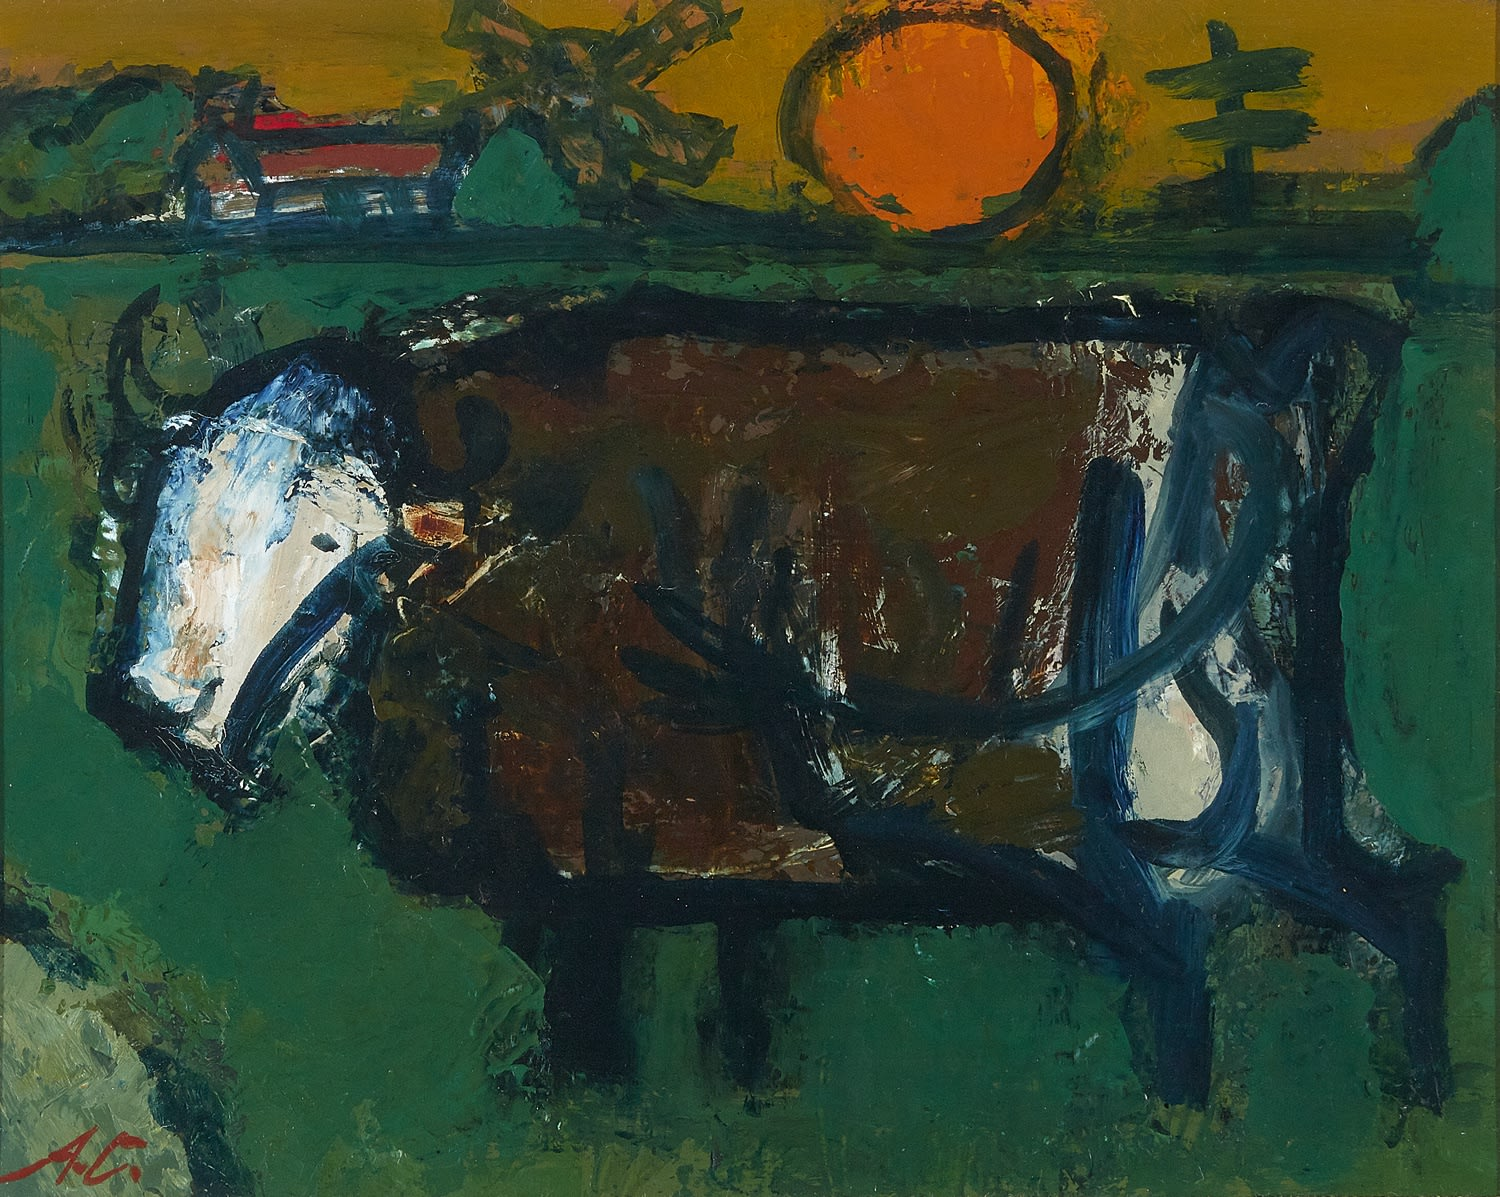 Alfred Cohen (1920-2001) La Vache 1976 Oil on canvas panel 20.3 x 25.4 cm The Artist's Estate © Estate of Alfred Cohen 2020